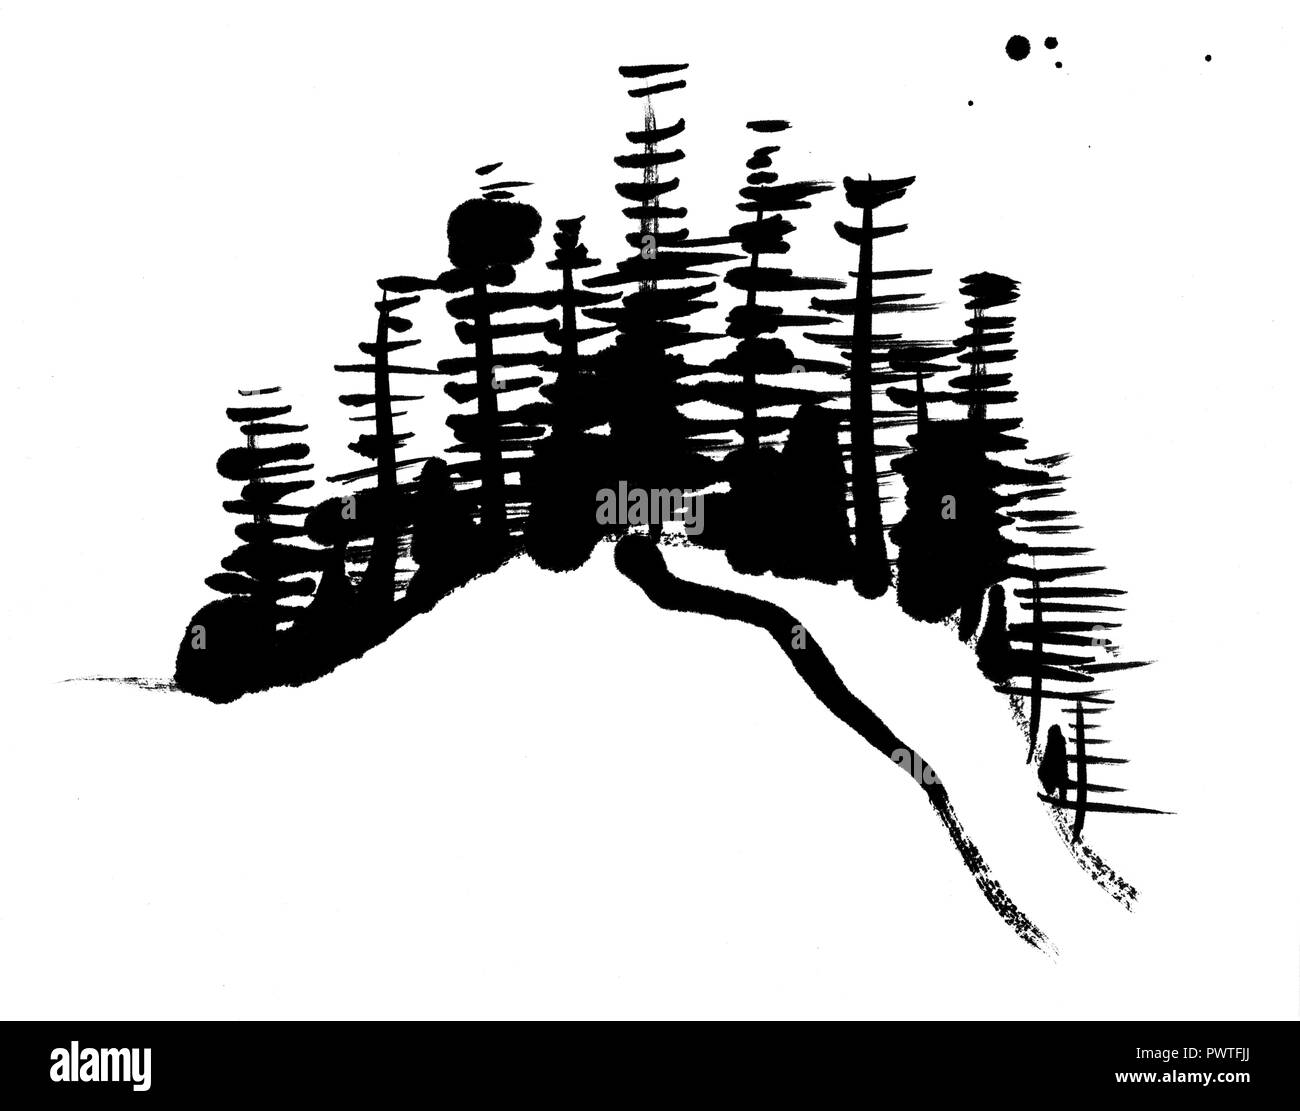 A black and white Chinese style ink painting, abstract trees made up by brush strokes, on a white background with copy space Stock Photo